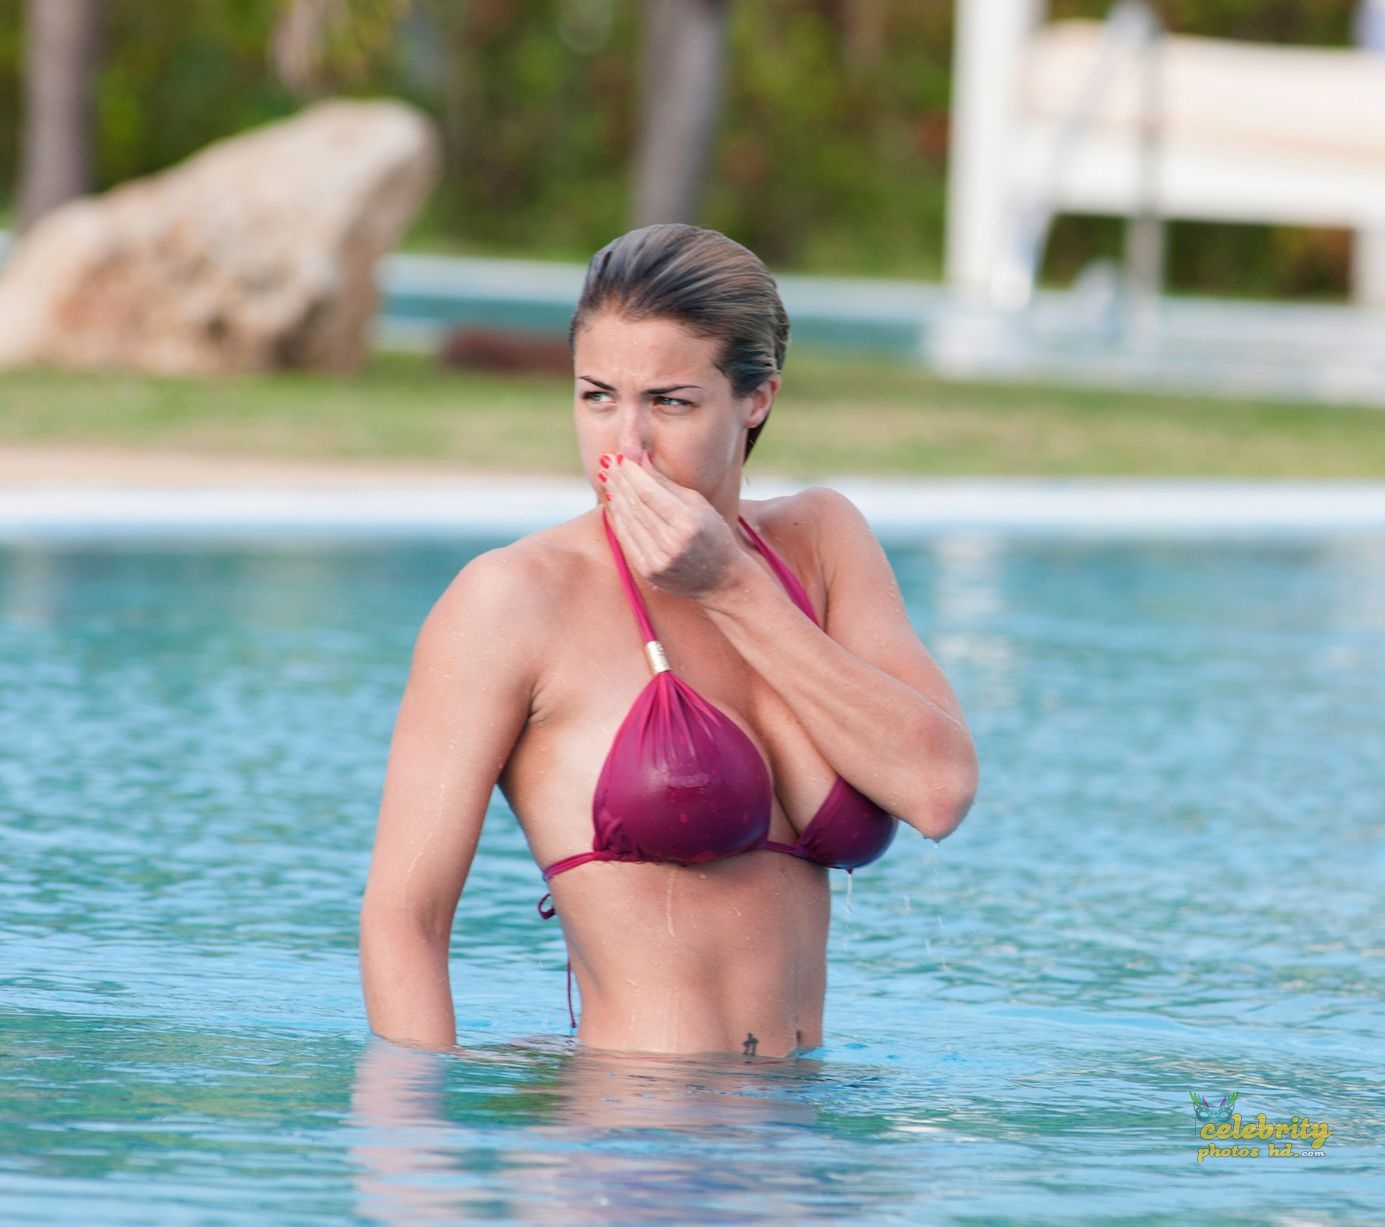 Hollywood Actress Gemma Atkinson Bikini Photo (6)